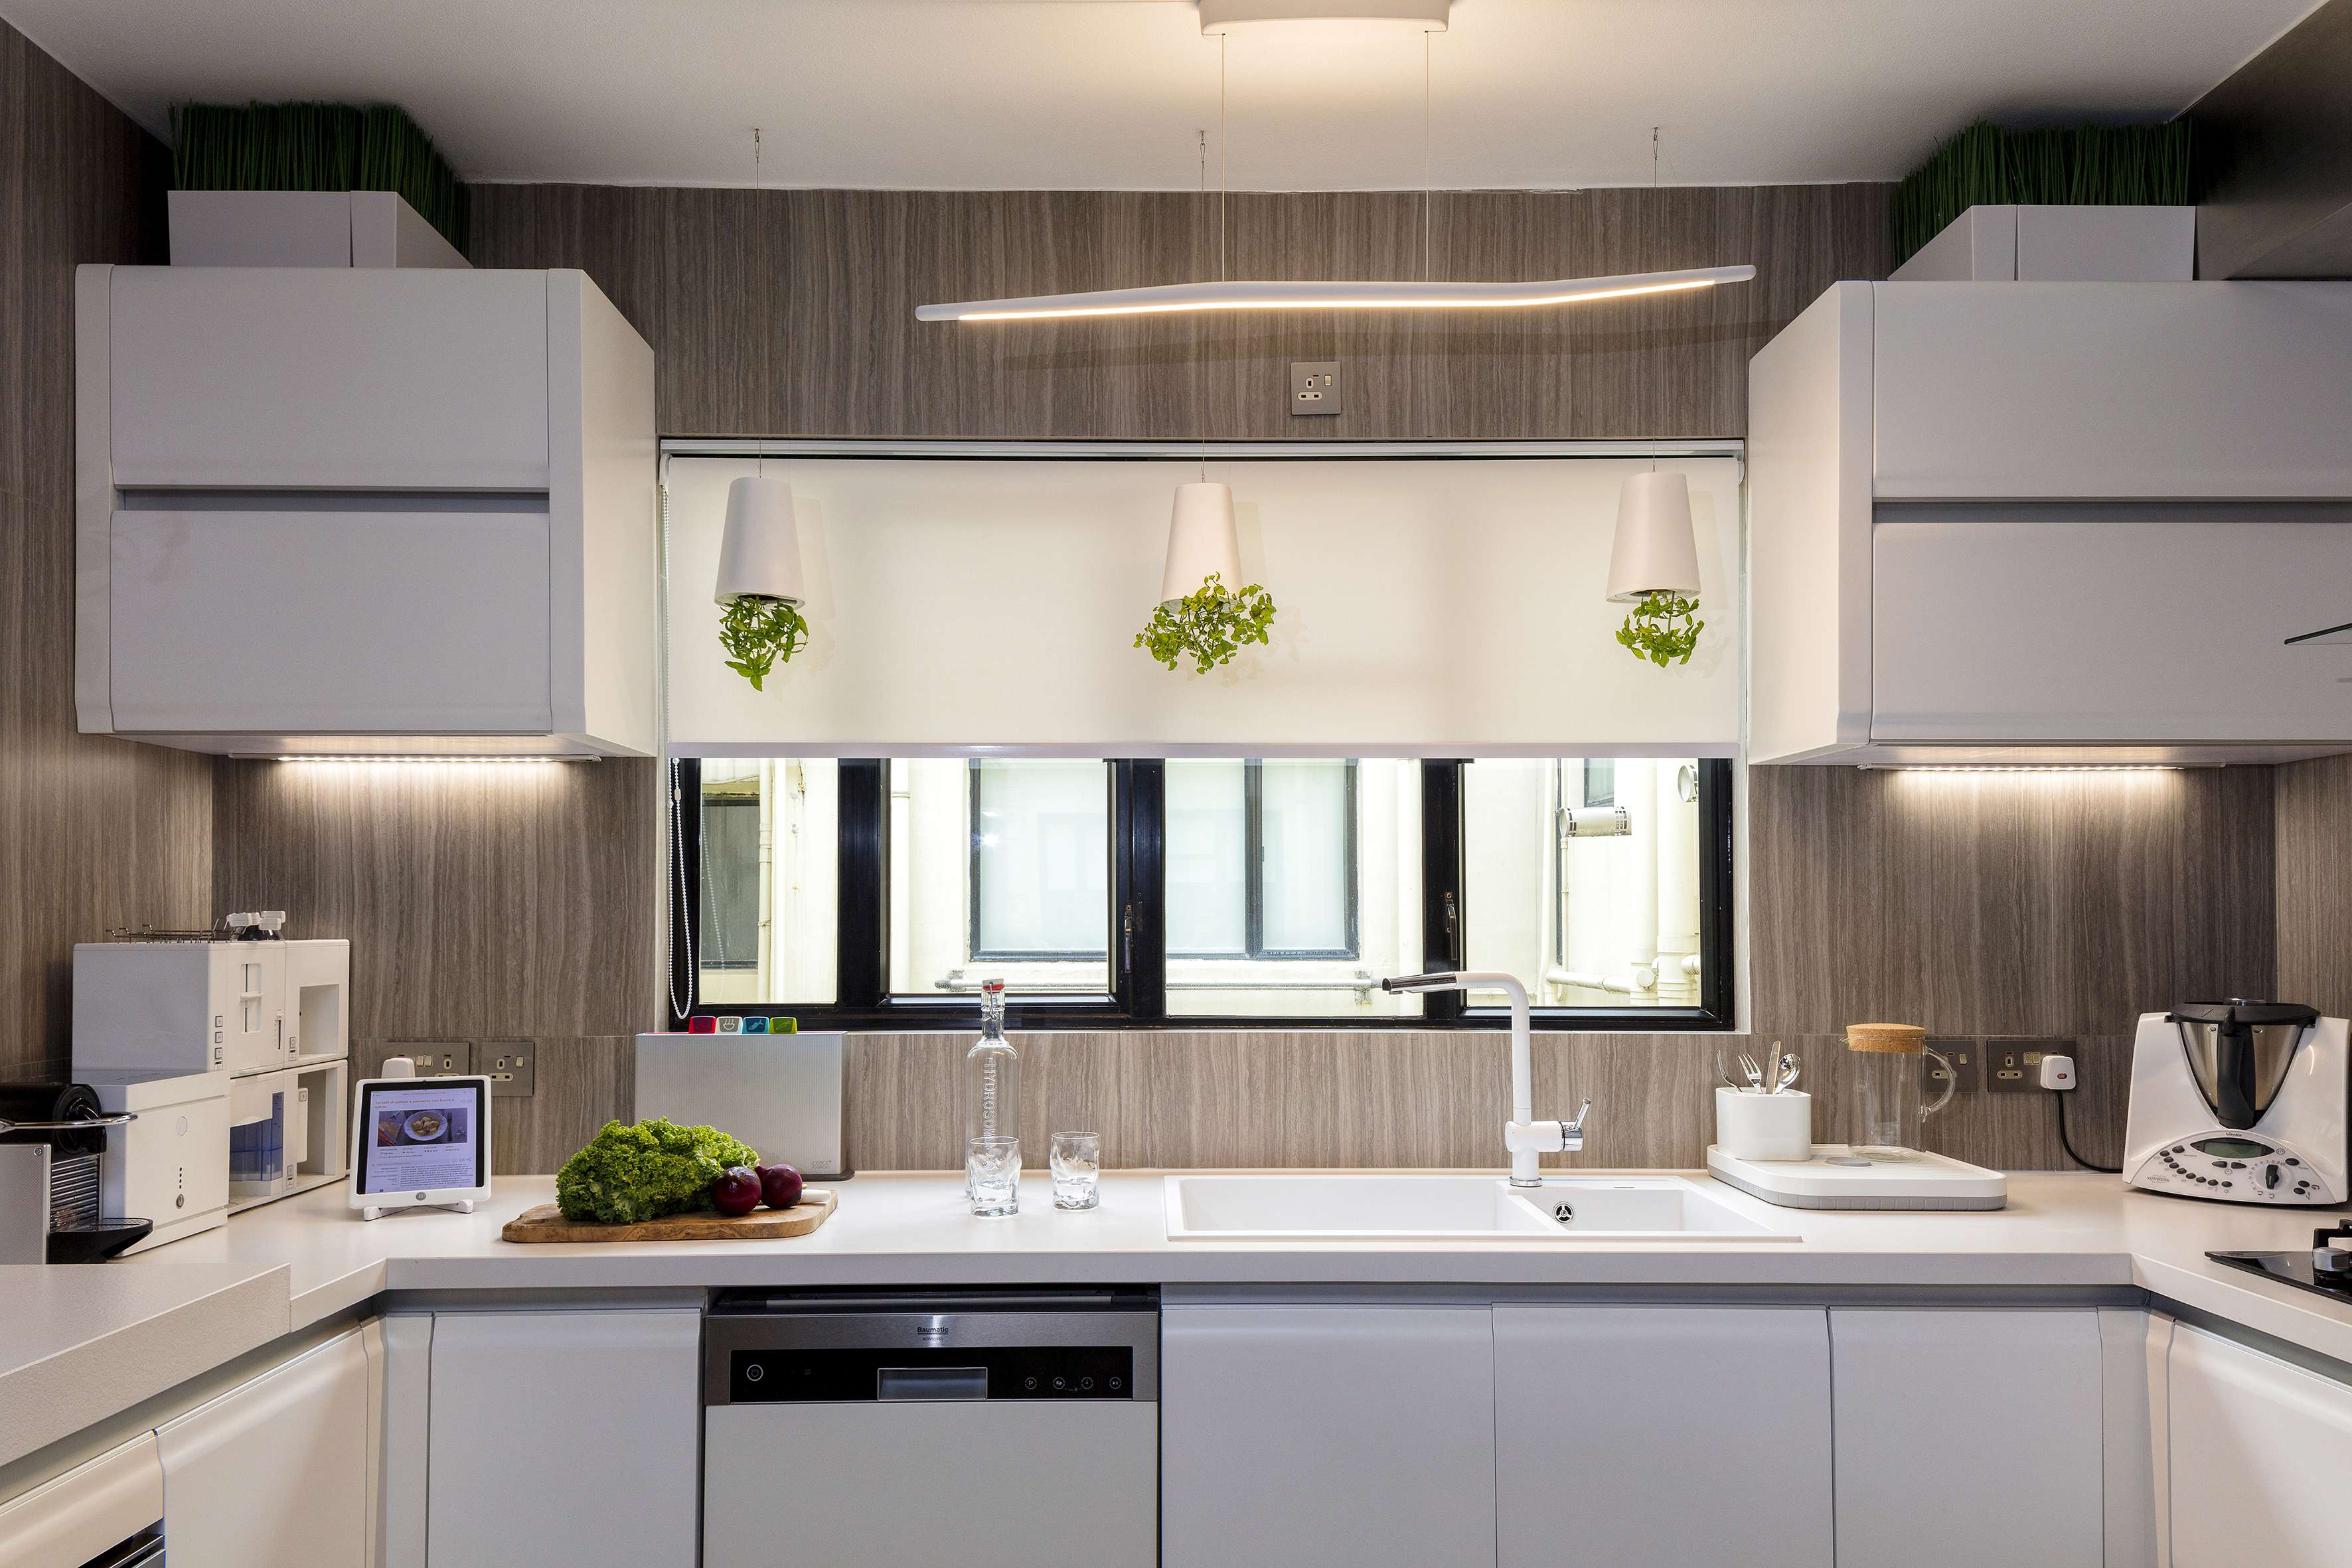 Kitchen Chu Designed The Kitchen  HK 145 000 Which Includes Ultra Durable And Easy To Clean Quartz Countertops The Suspended Planters 340 Each Are Architect Gives His Hong Kong Apartment Eco Friendly Makeover Post